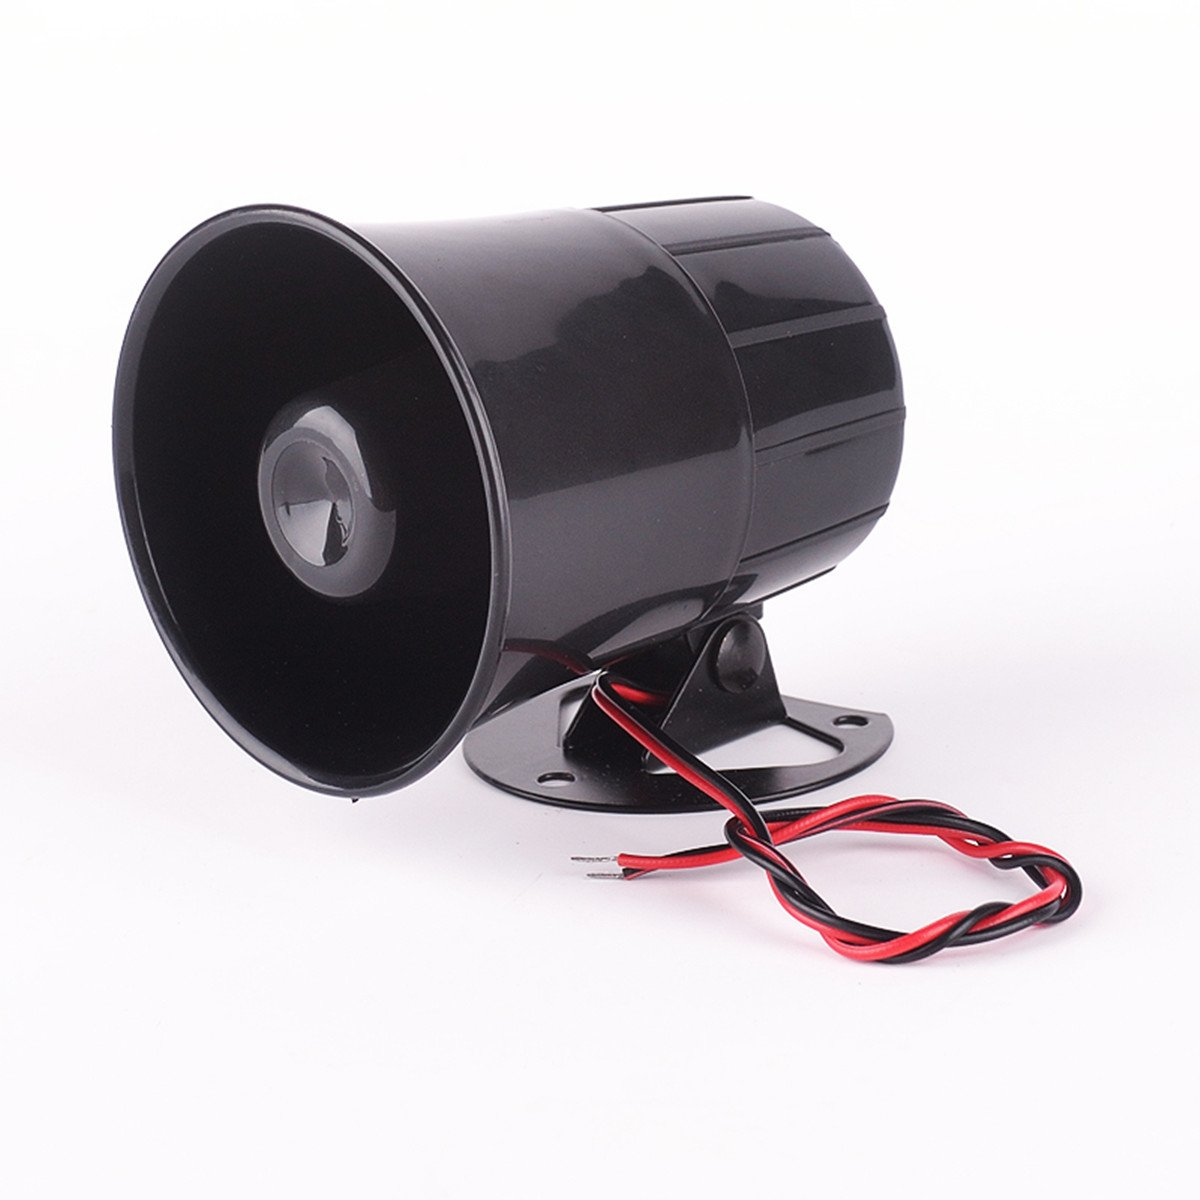 Iztor 12V Car Van Truck Horn 6 Tone Loud Security Alarm Siren